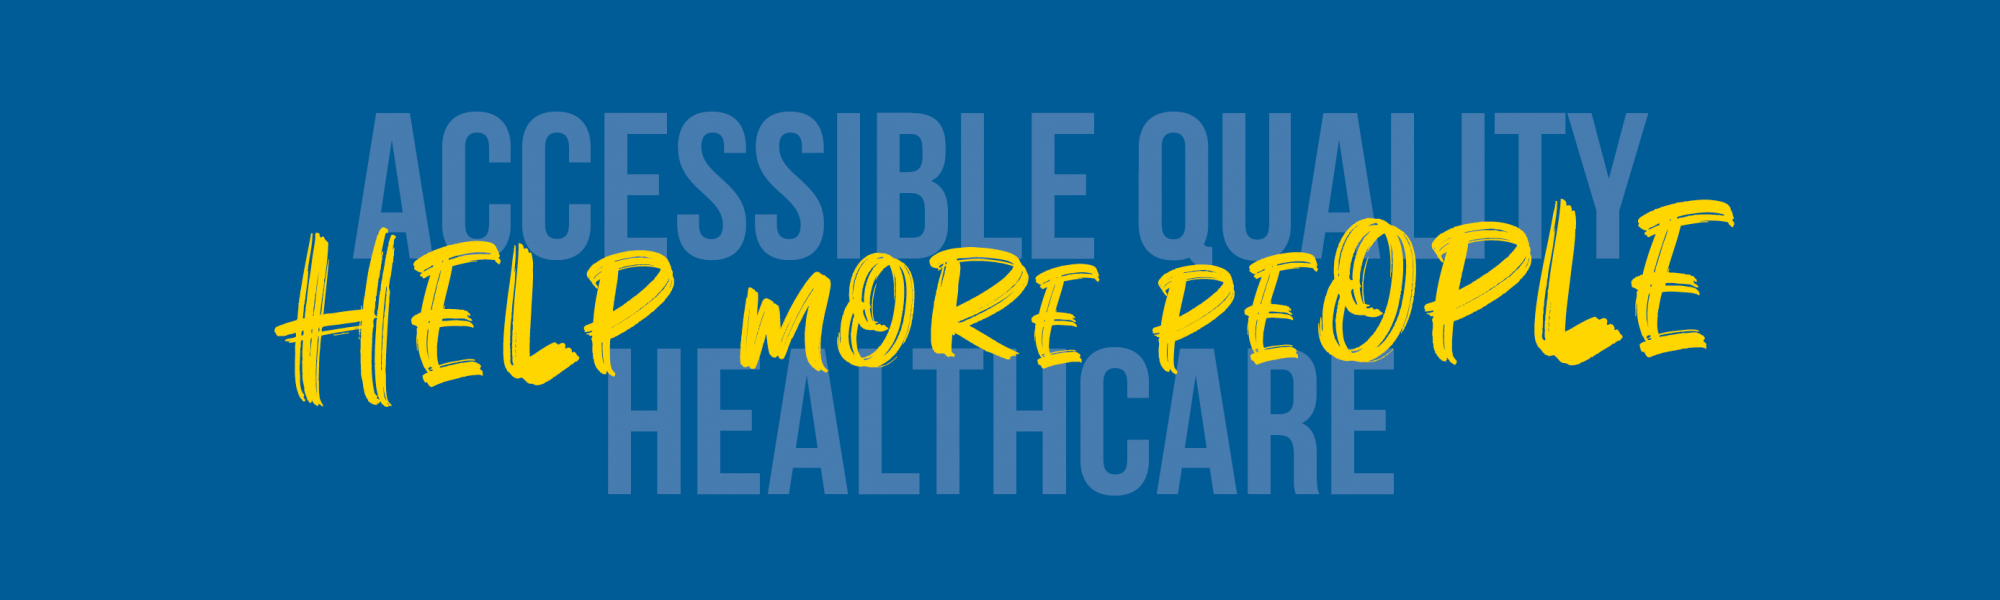 Accessible Quality Healthcare